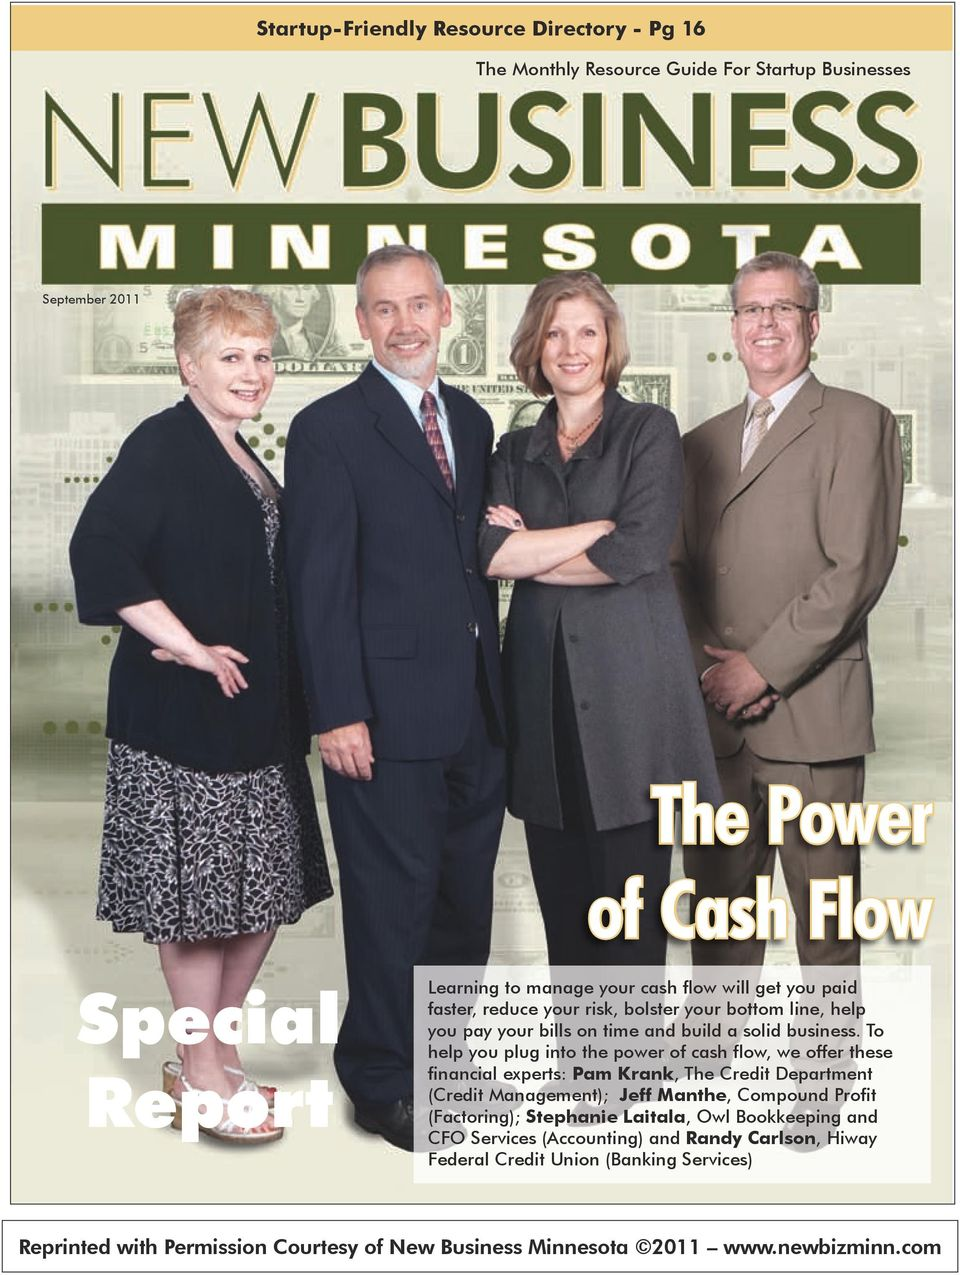 To help you plug into the power of cash flow, we offer these financial experts: Pam Krank, The Credit Department (Credit Management); Jeff Manthe, Compound Profit (Factoring);